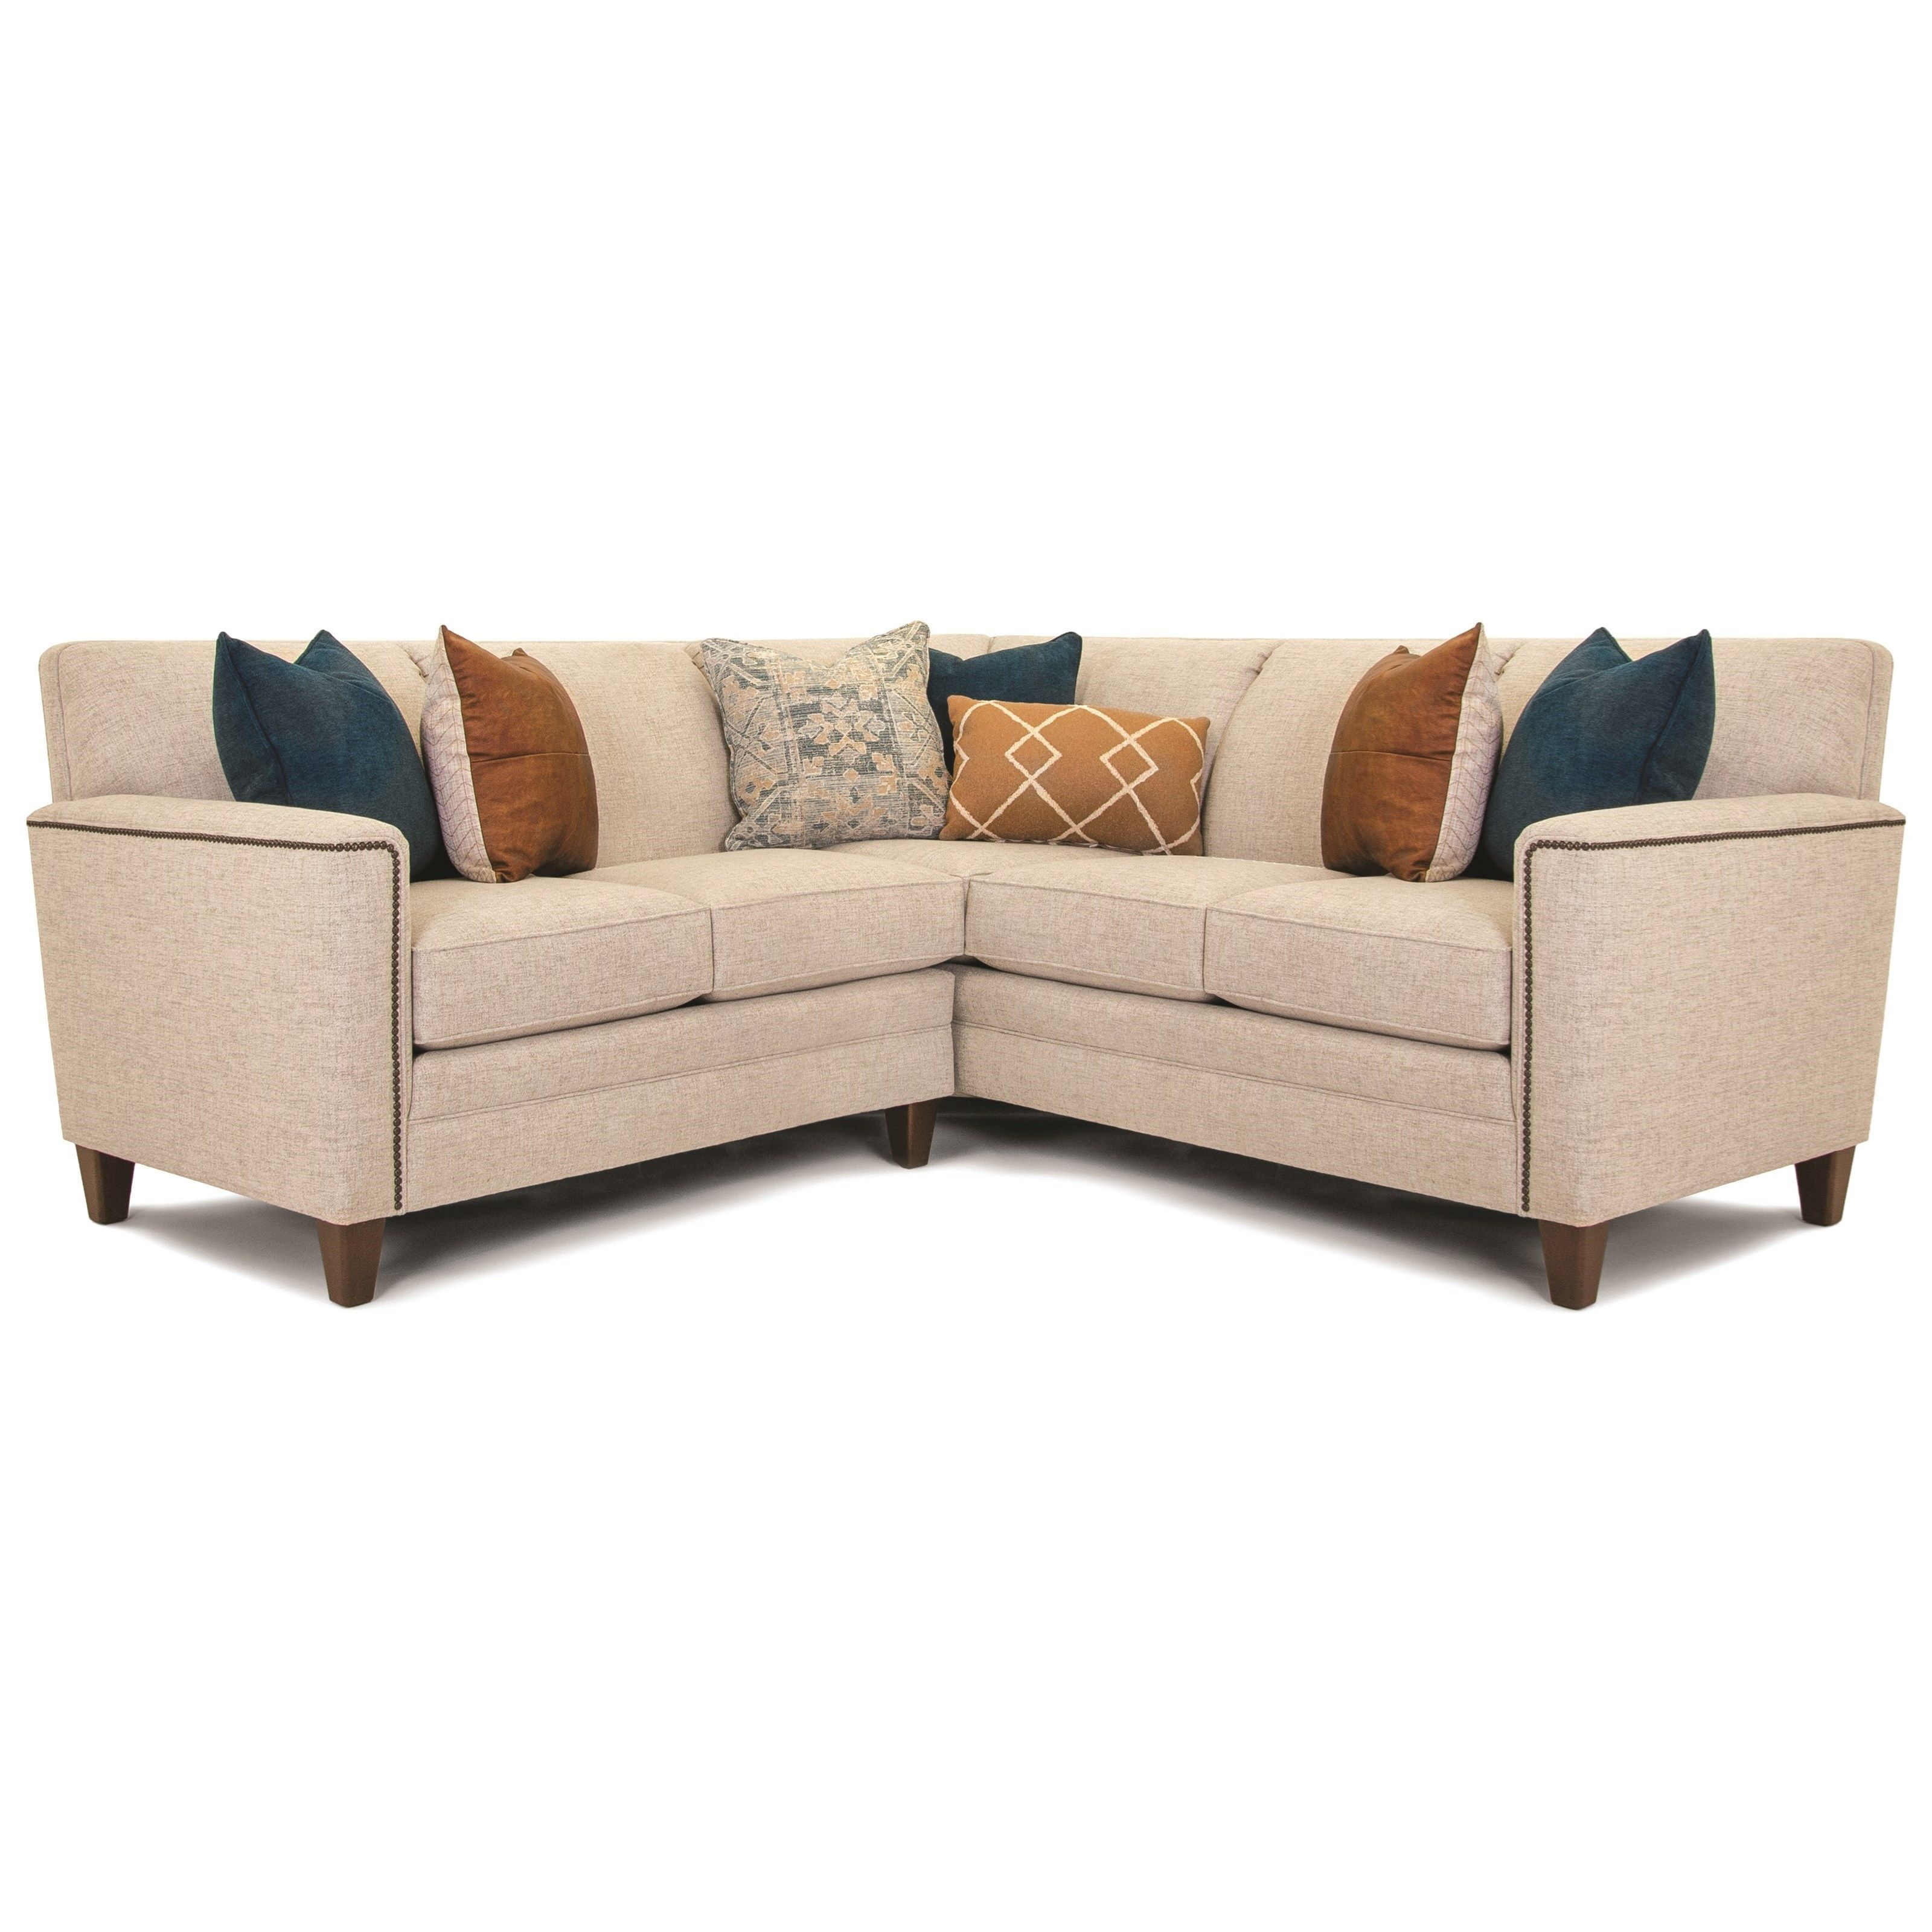 Build Your Own 3000 Series Customizable 2 Piece Sectional By Smith Brothers At Darvin Furniture Sectional Couch With Chaise Mattress Furniture